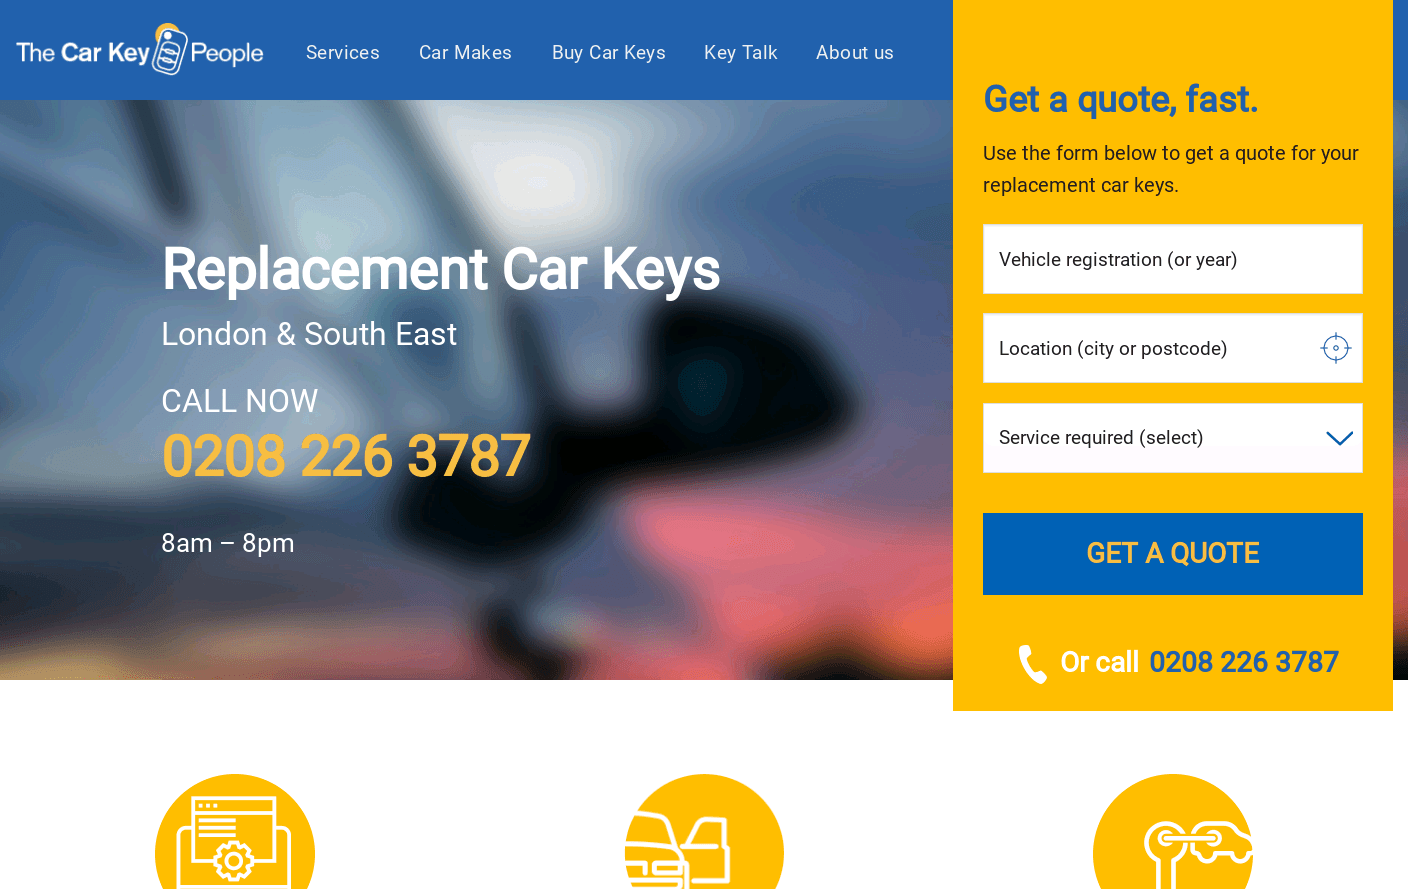 The Car Key People